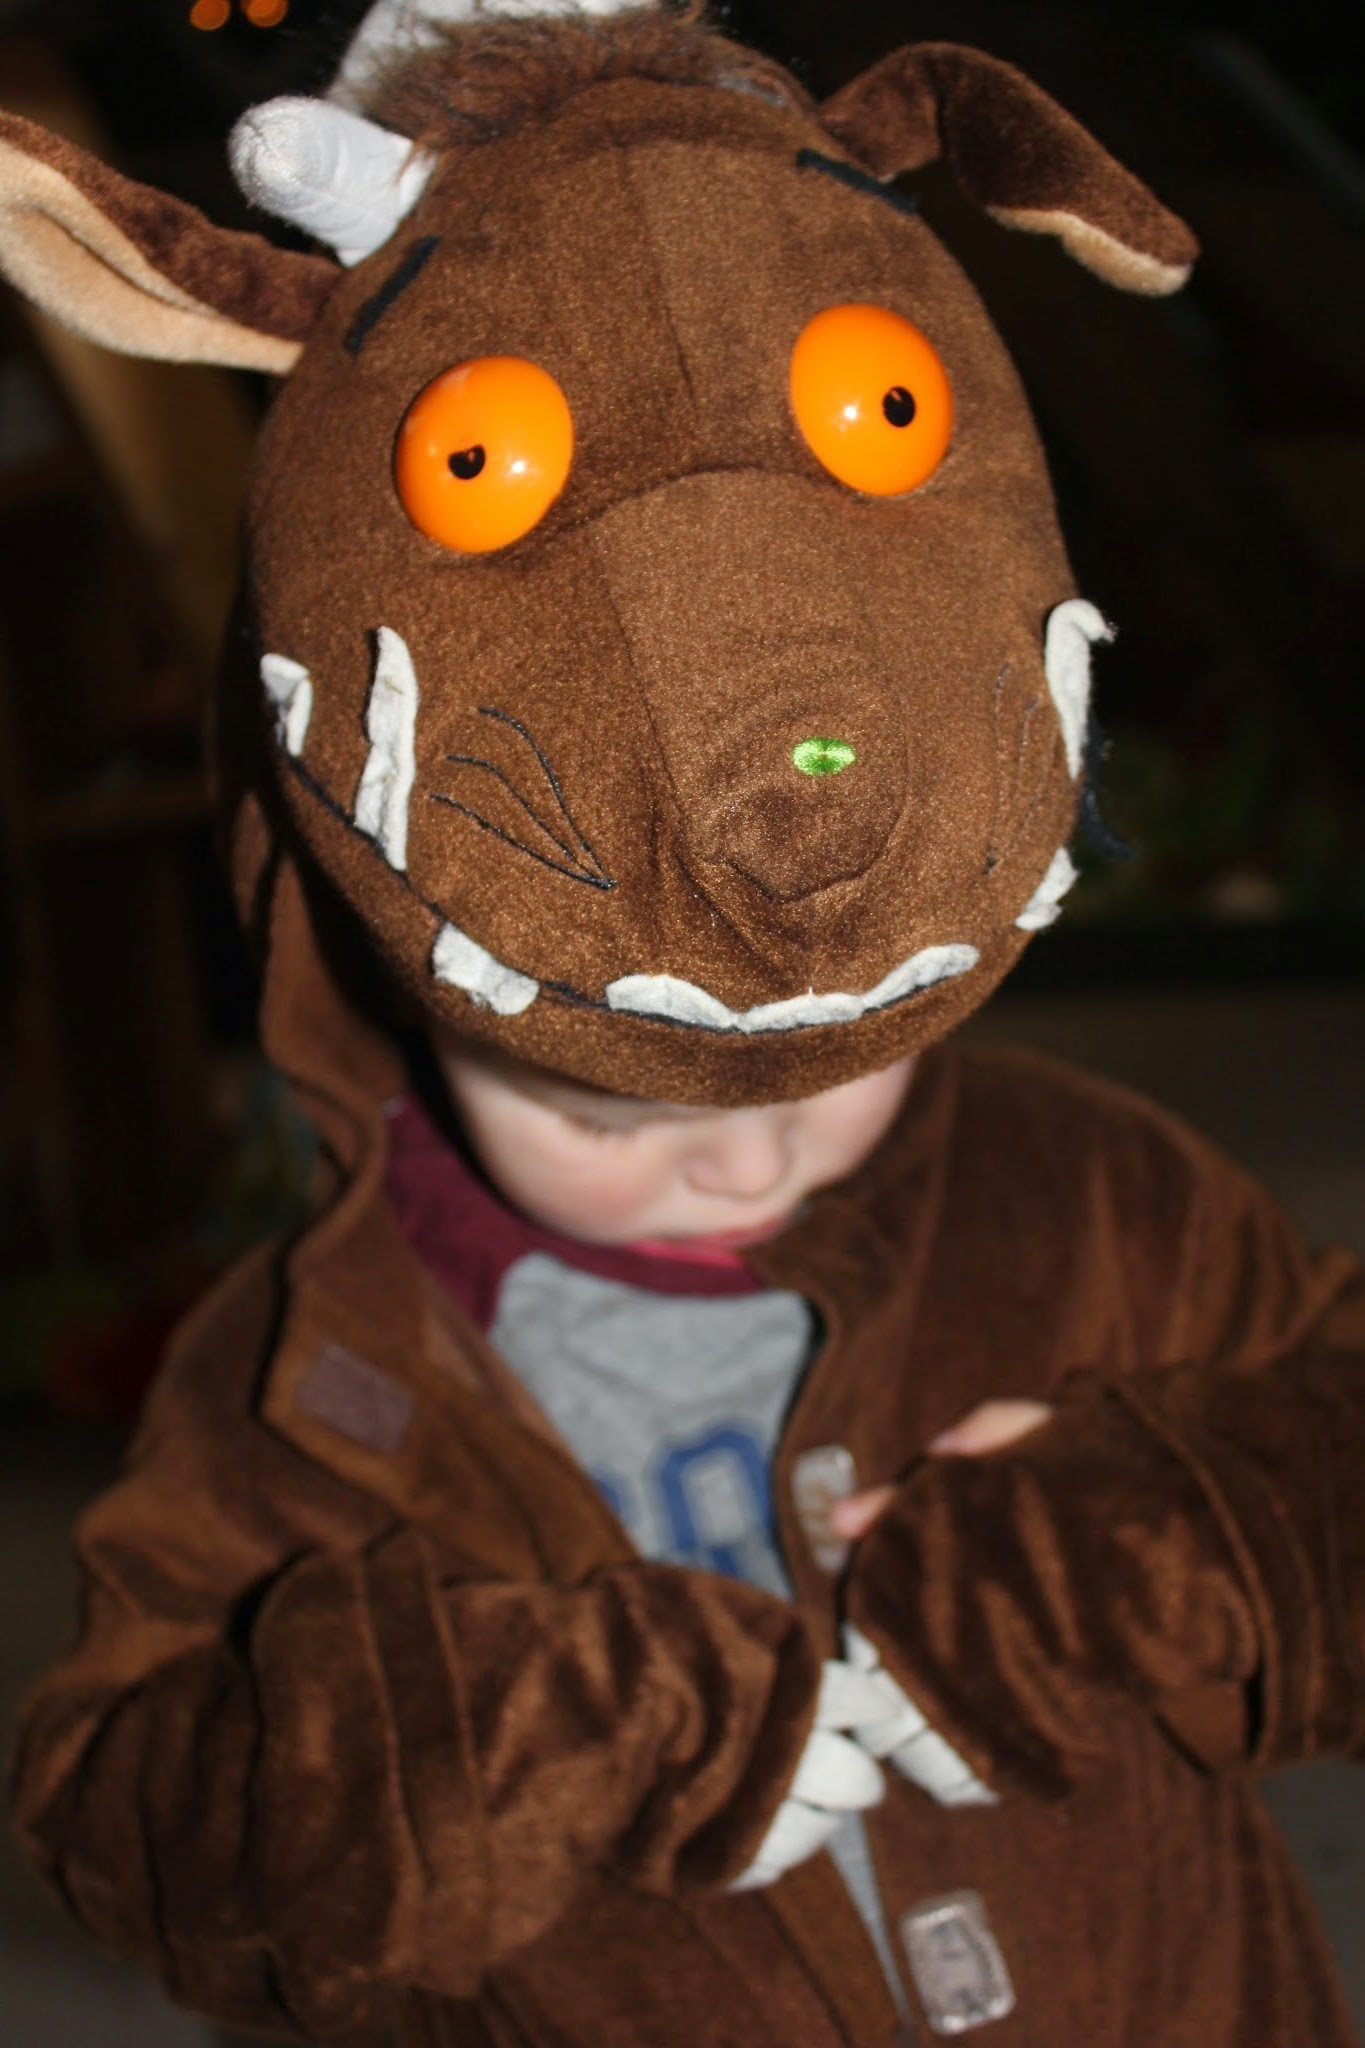 reading bedtime stories the gruffalo is a brilliant story for young children